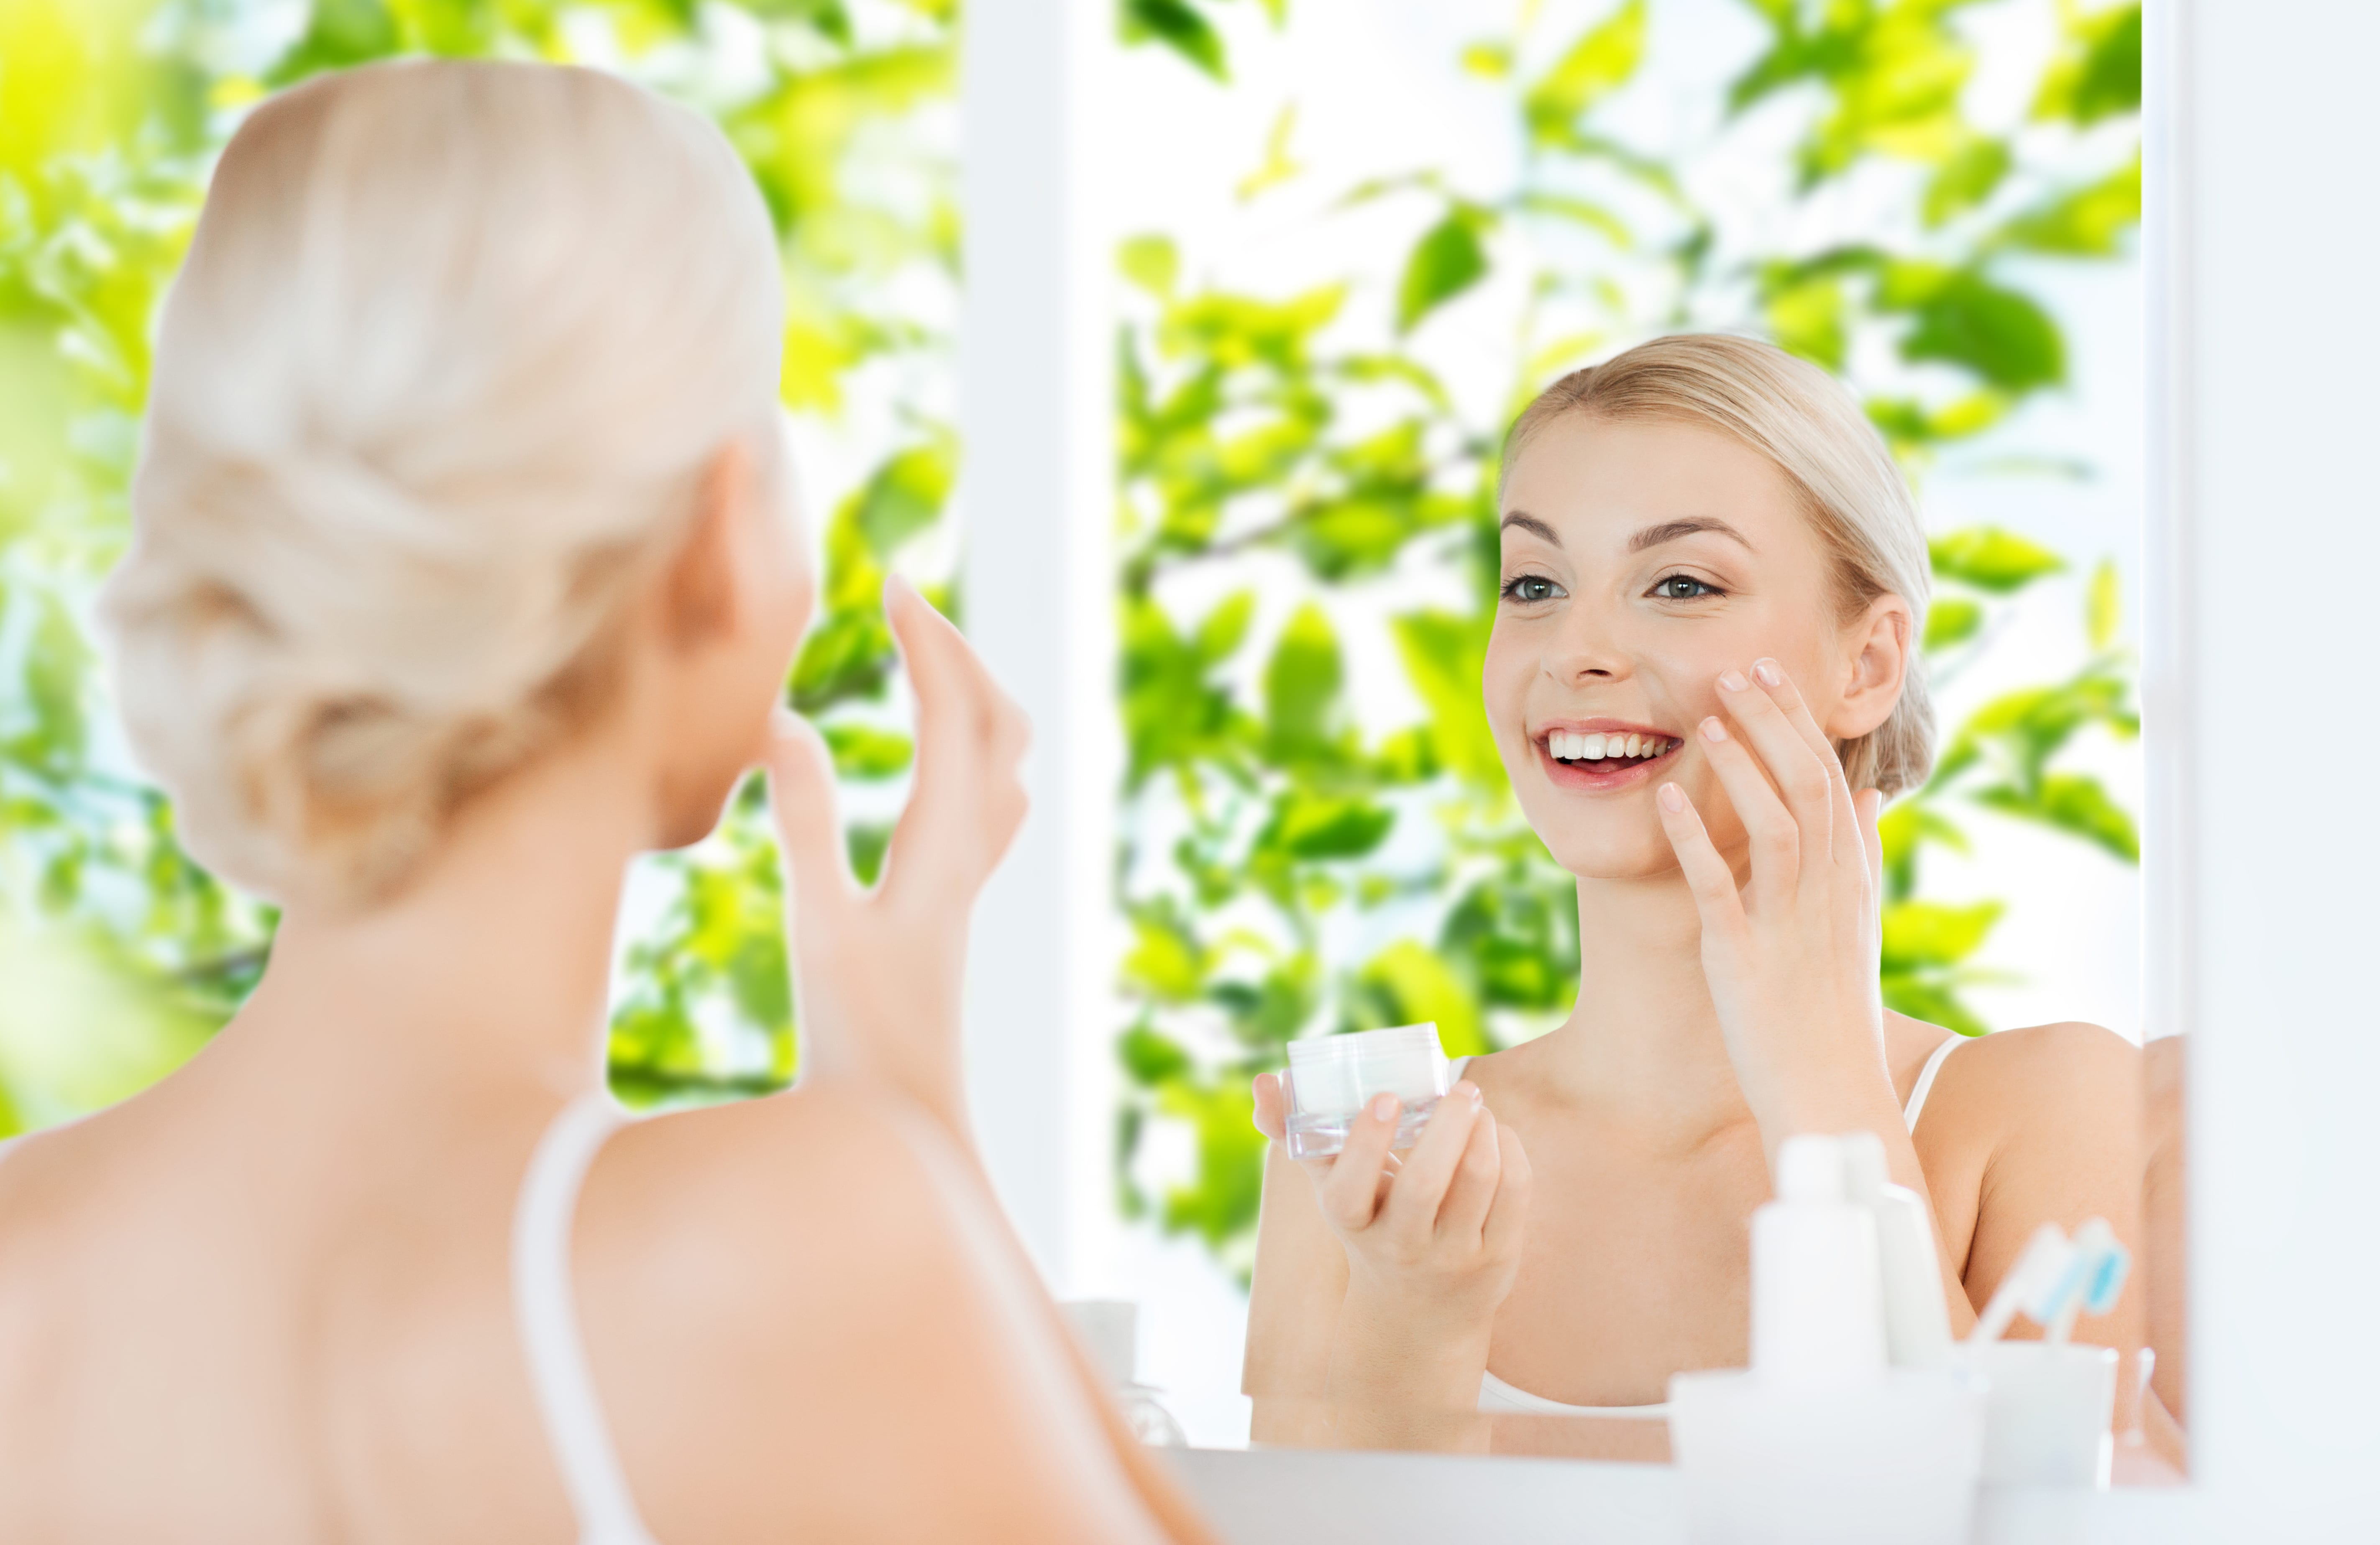 Top 4 habits that are harming your skin